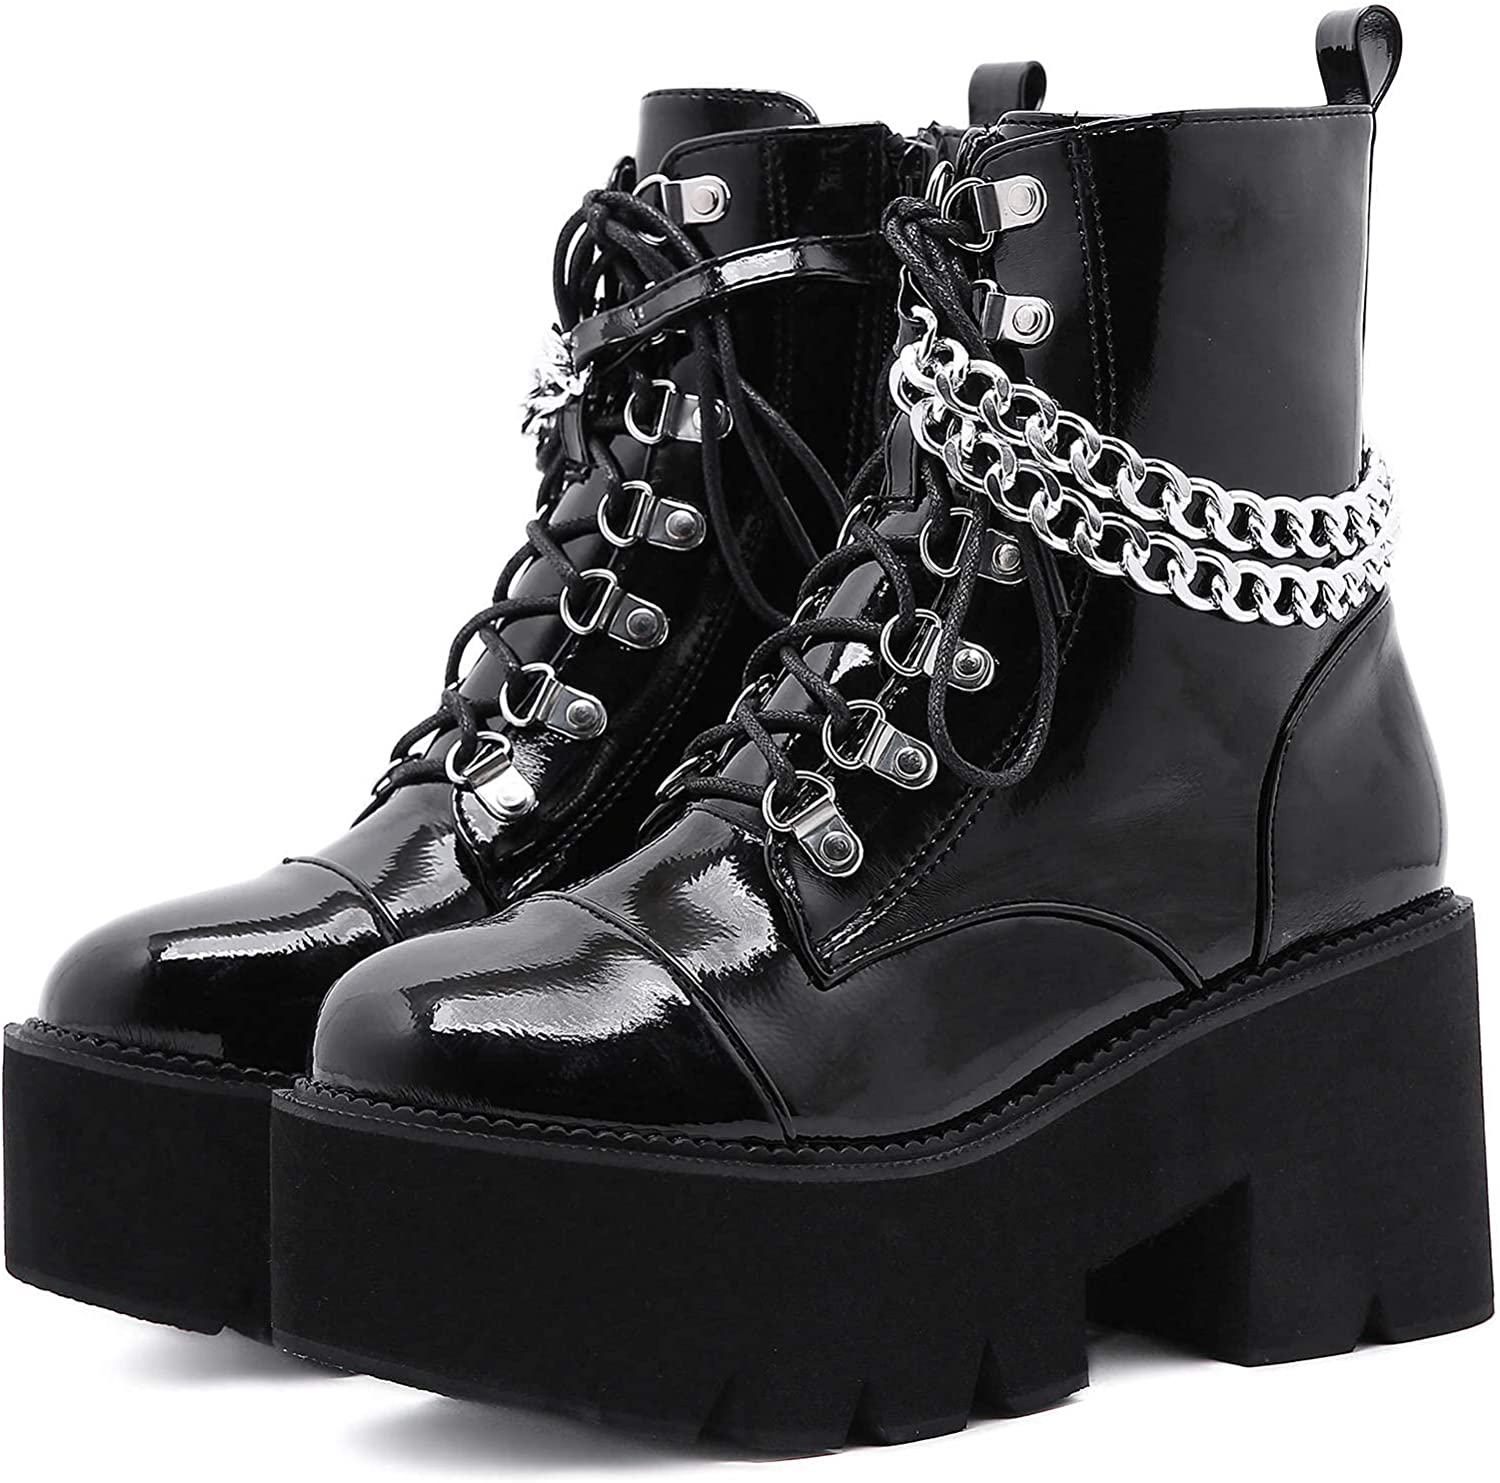 Amazon.com: YIYA Women's Studded Combat Boots Black Chunky Heel Platform Gothic Shoes Sexy Chain Zipper Motorcycle Booties for Women: Shoes